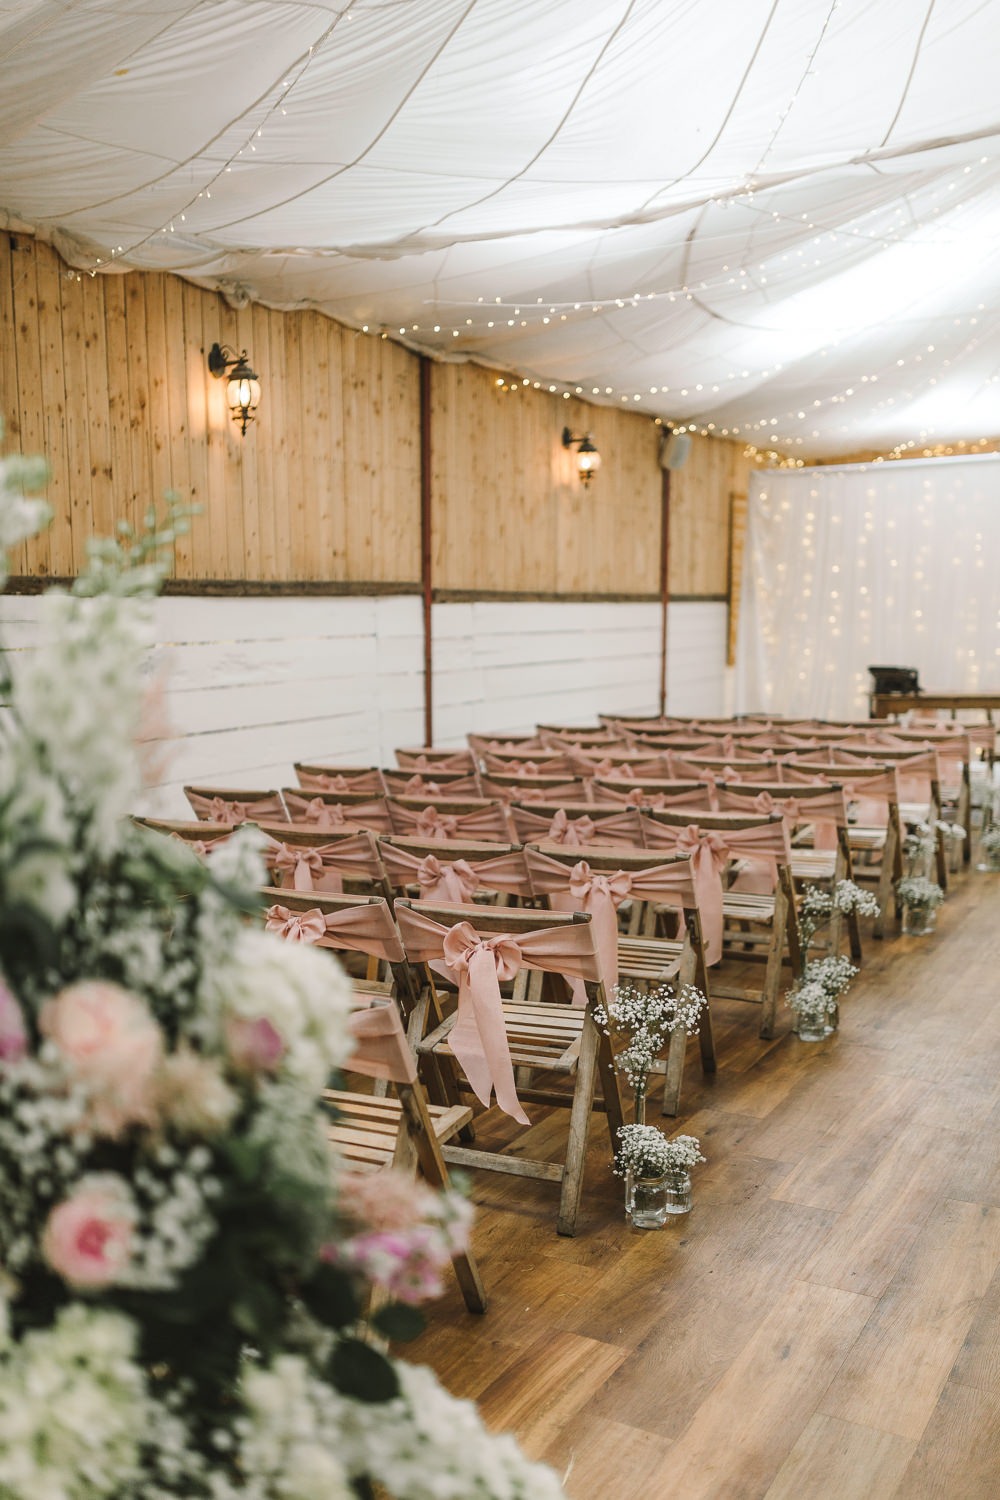 Ceremony Room Drapes Fairy Lights Ceiling Flowers Aisle Arch Floral Pink Greenery Ribbon Chairs Wellbeing Farm Wedding Anna Wood Photography